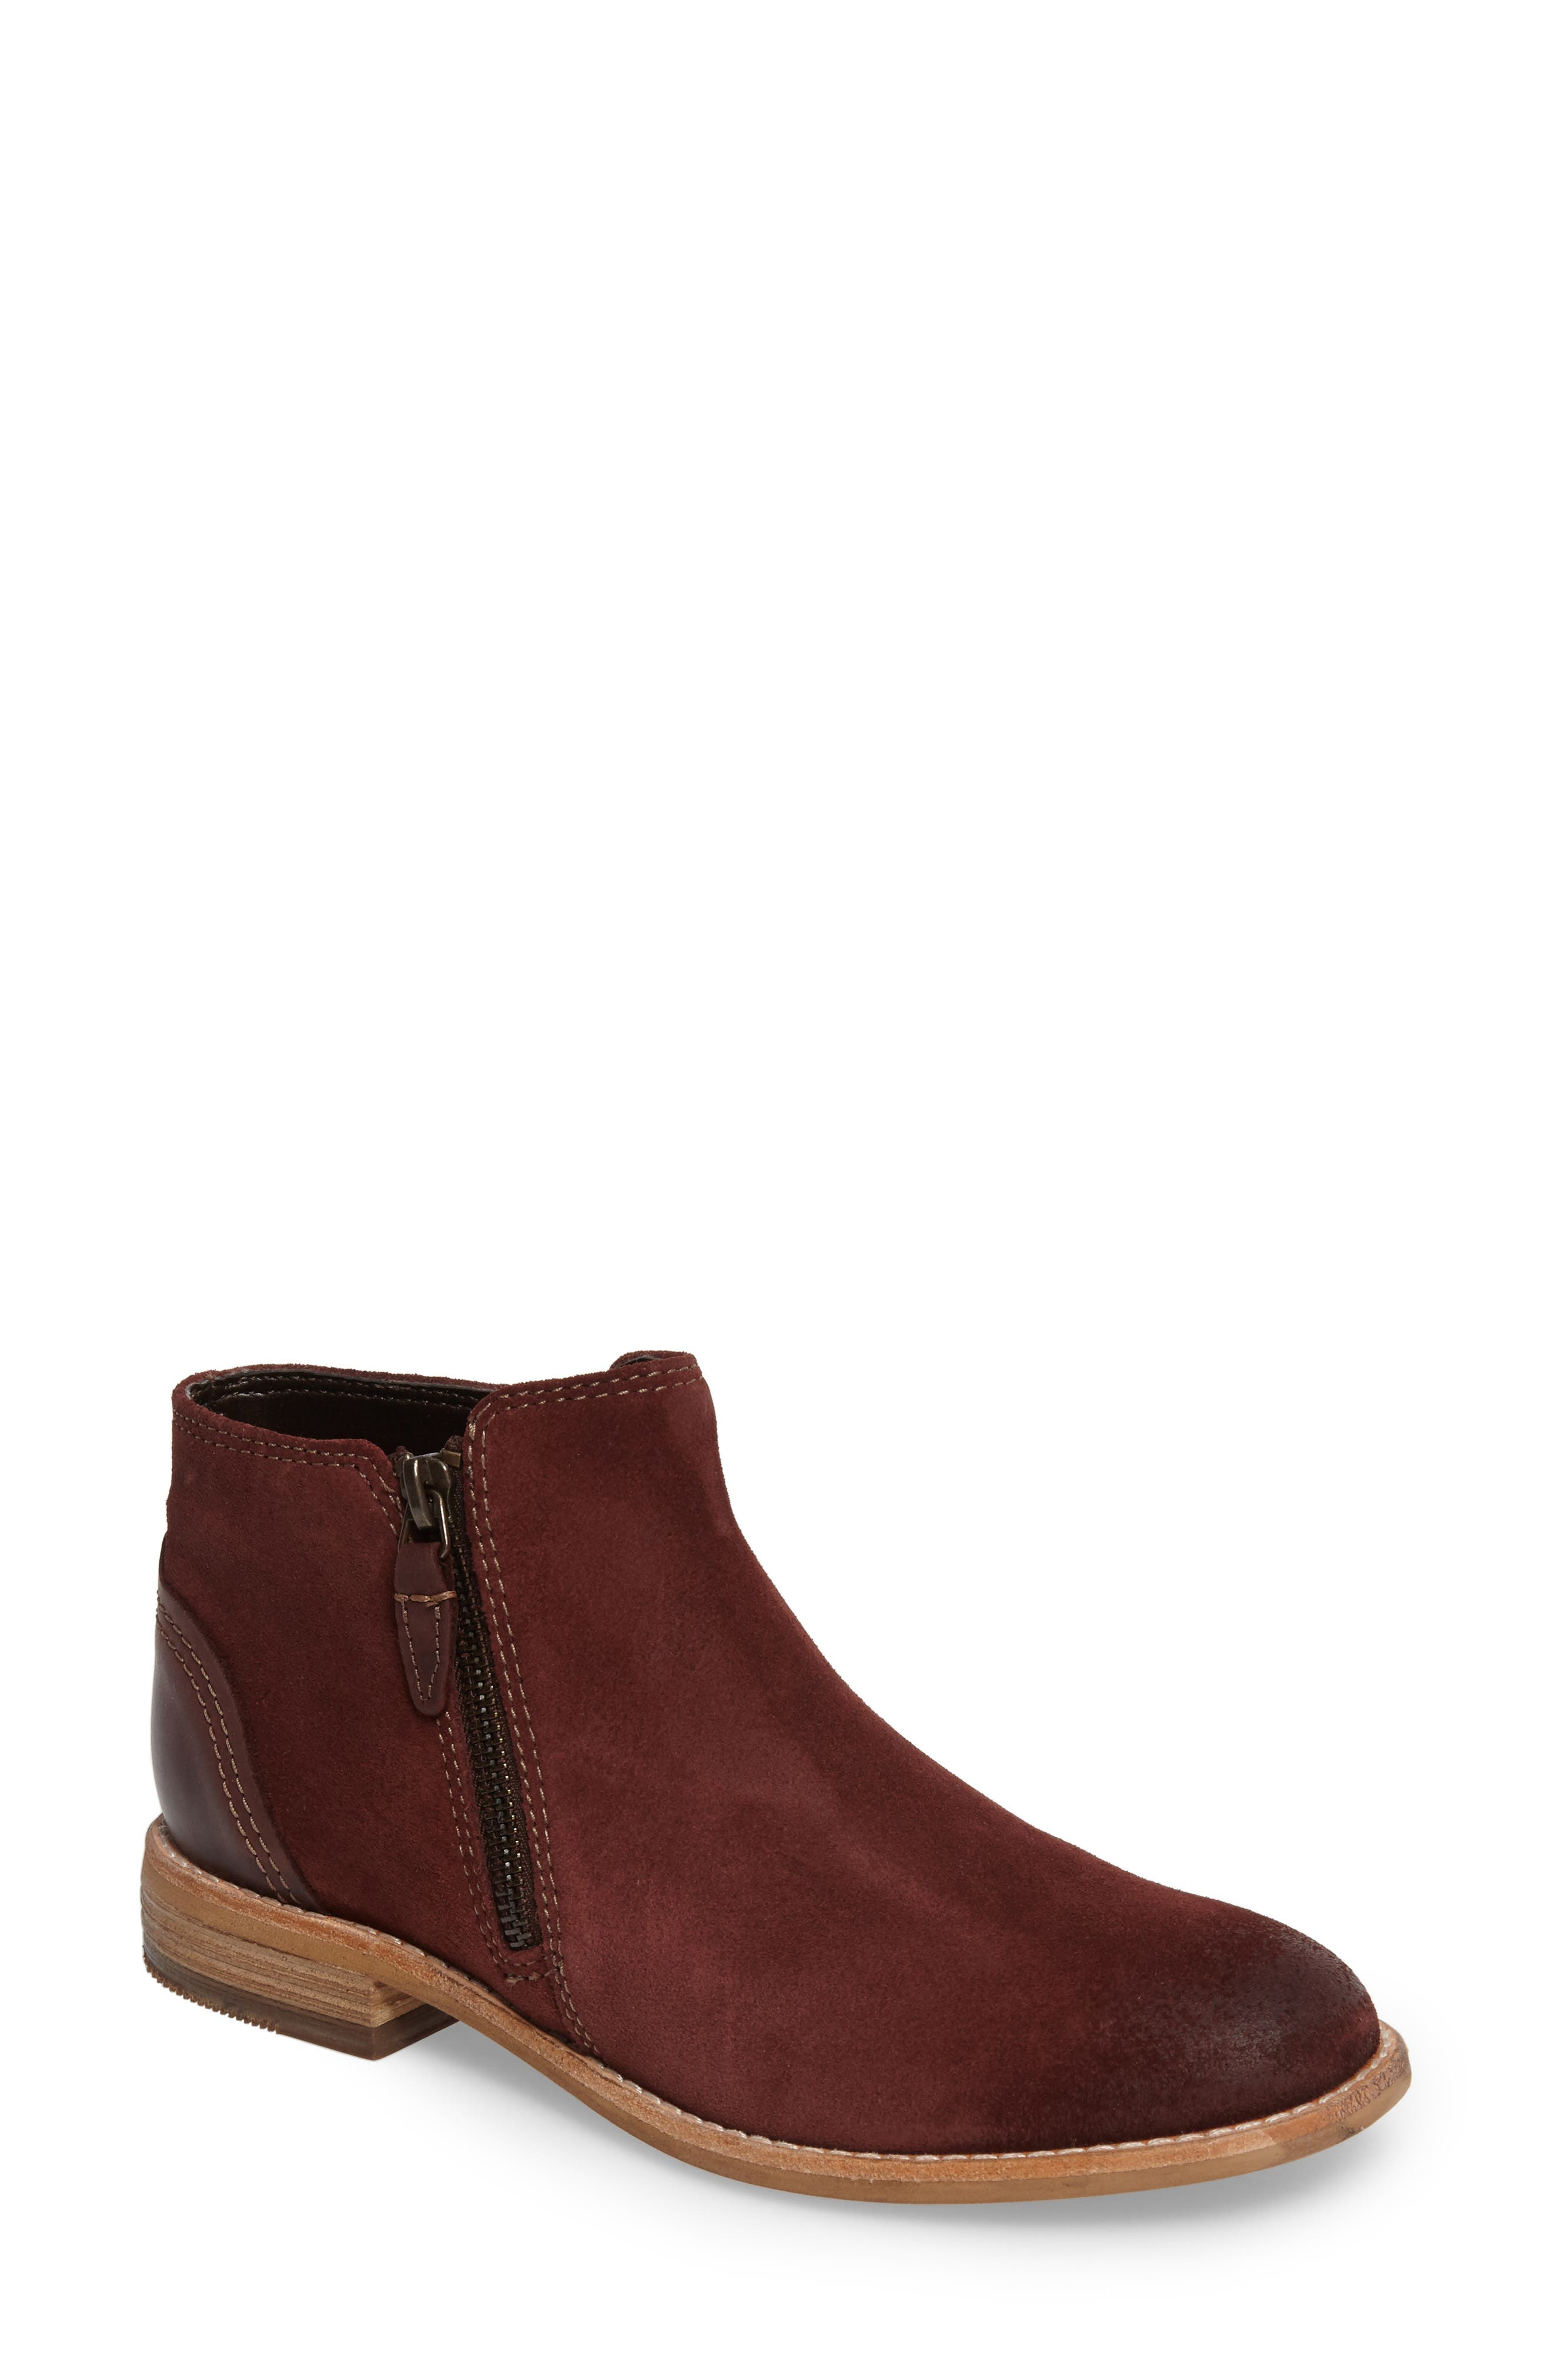 CLARKS<SUP>®</SUP> Maypearl Juno Ankle Boot, Main, color, MAHOGANY SUEDE